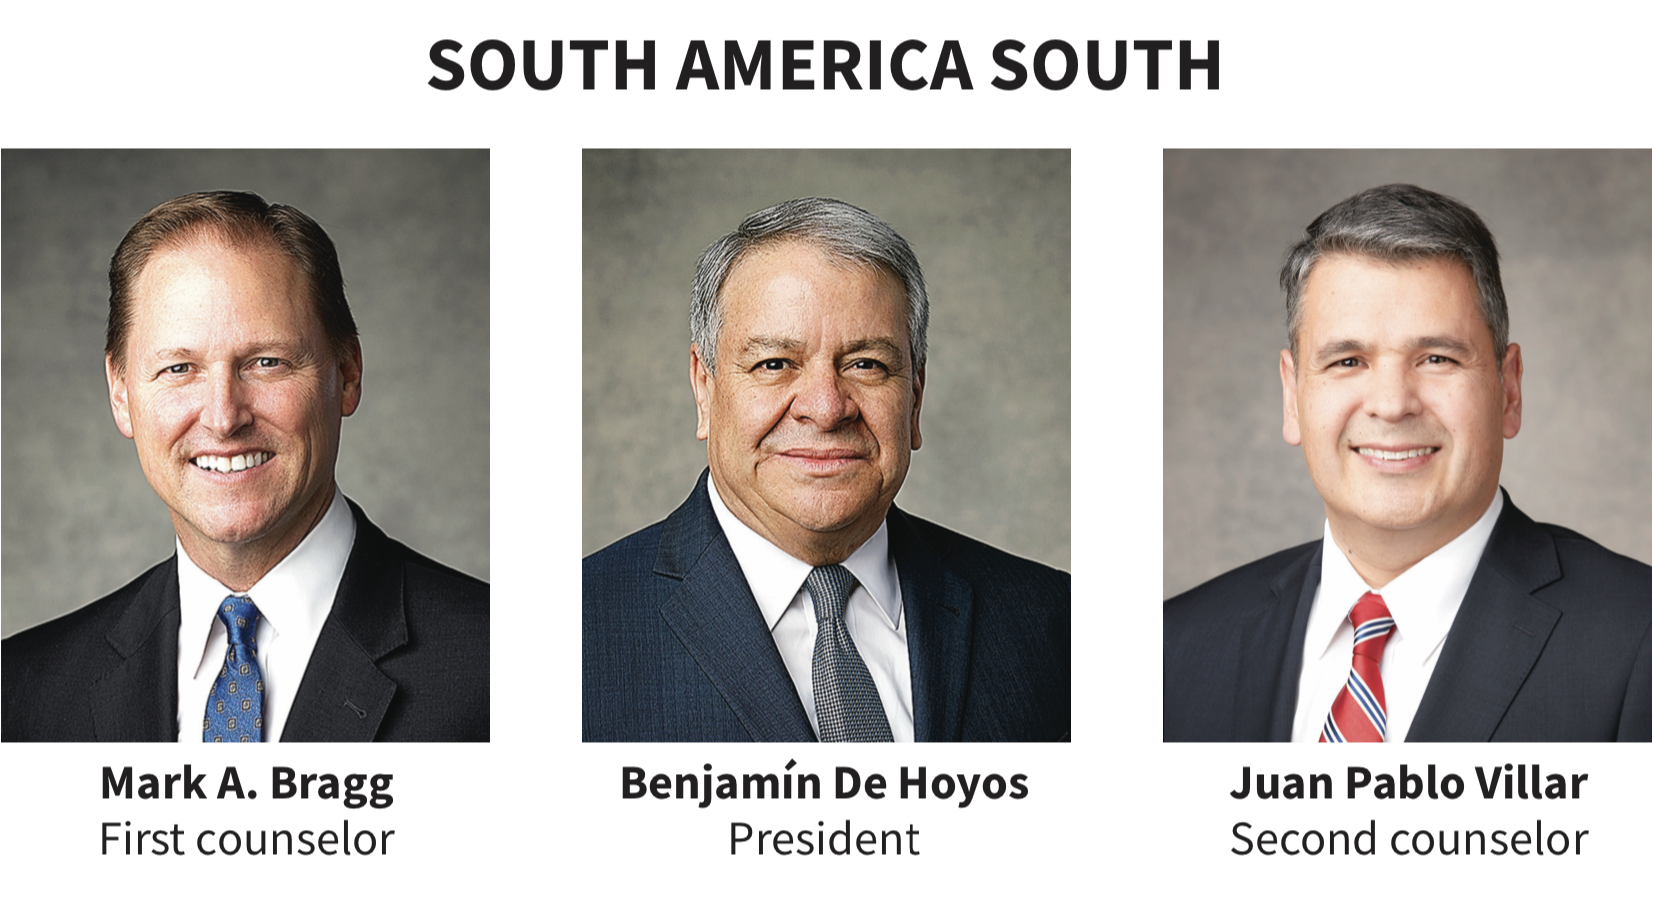 South America South area presidency